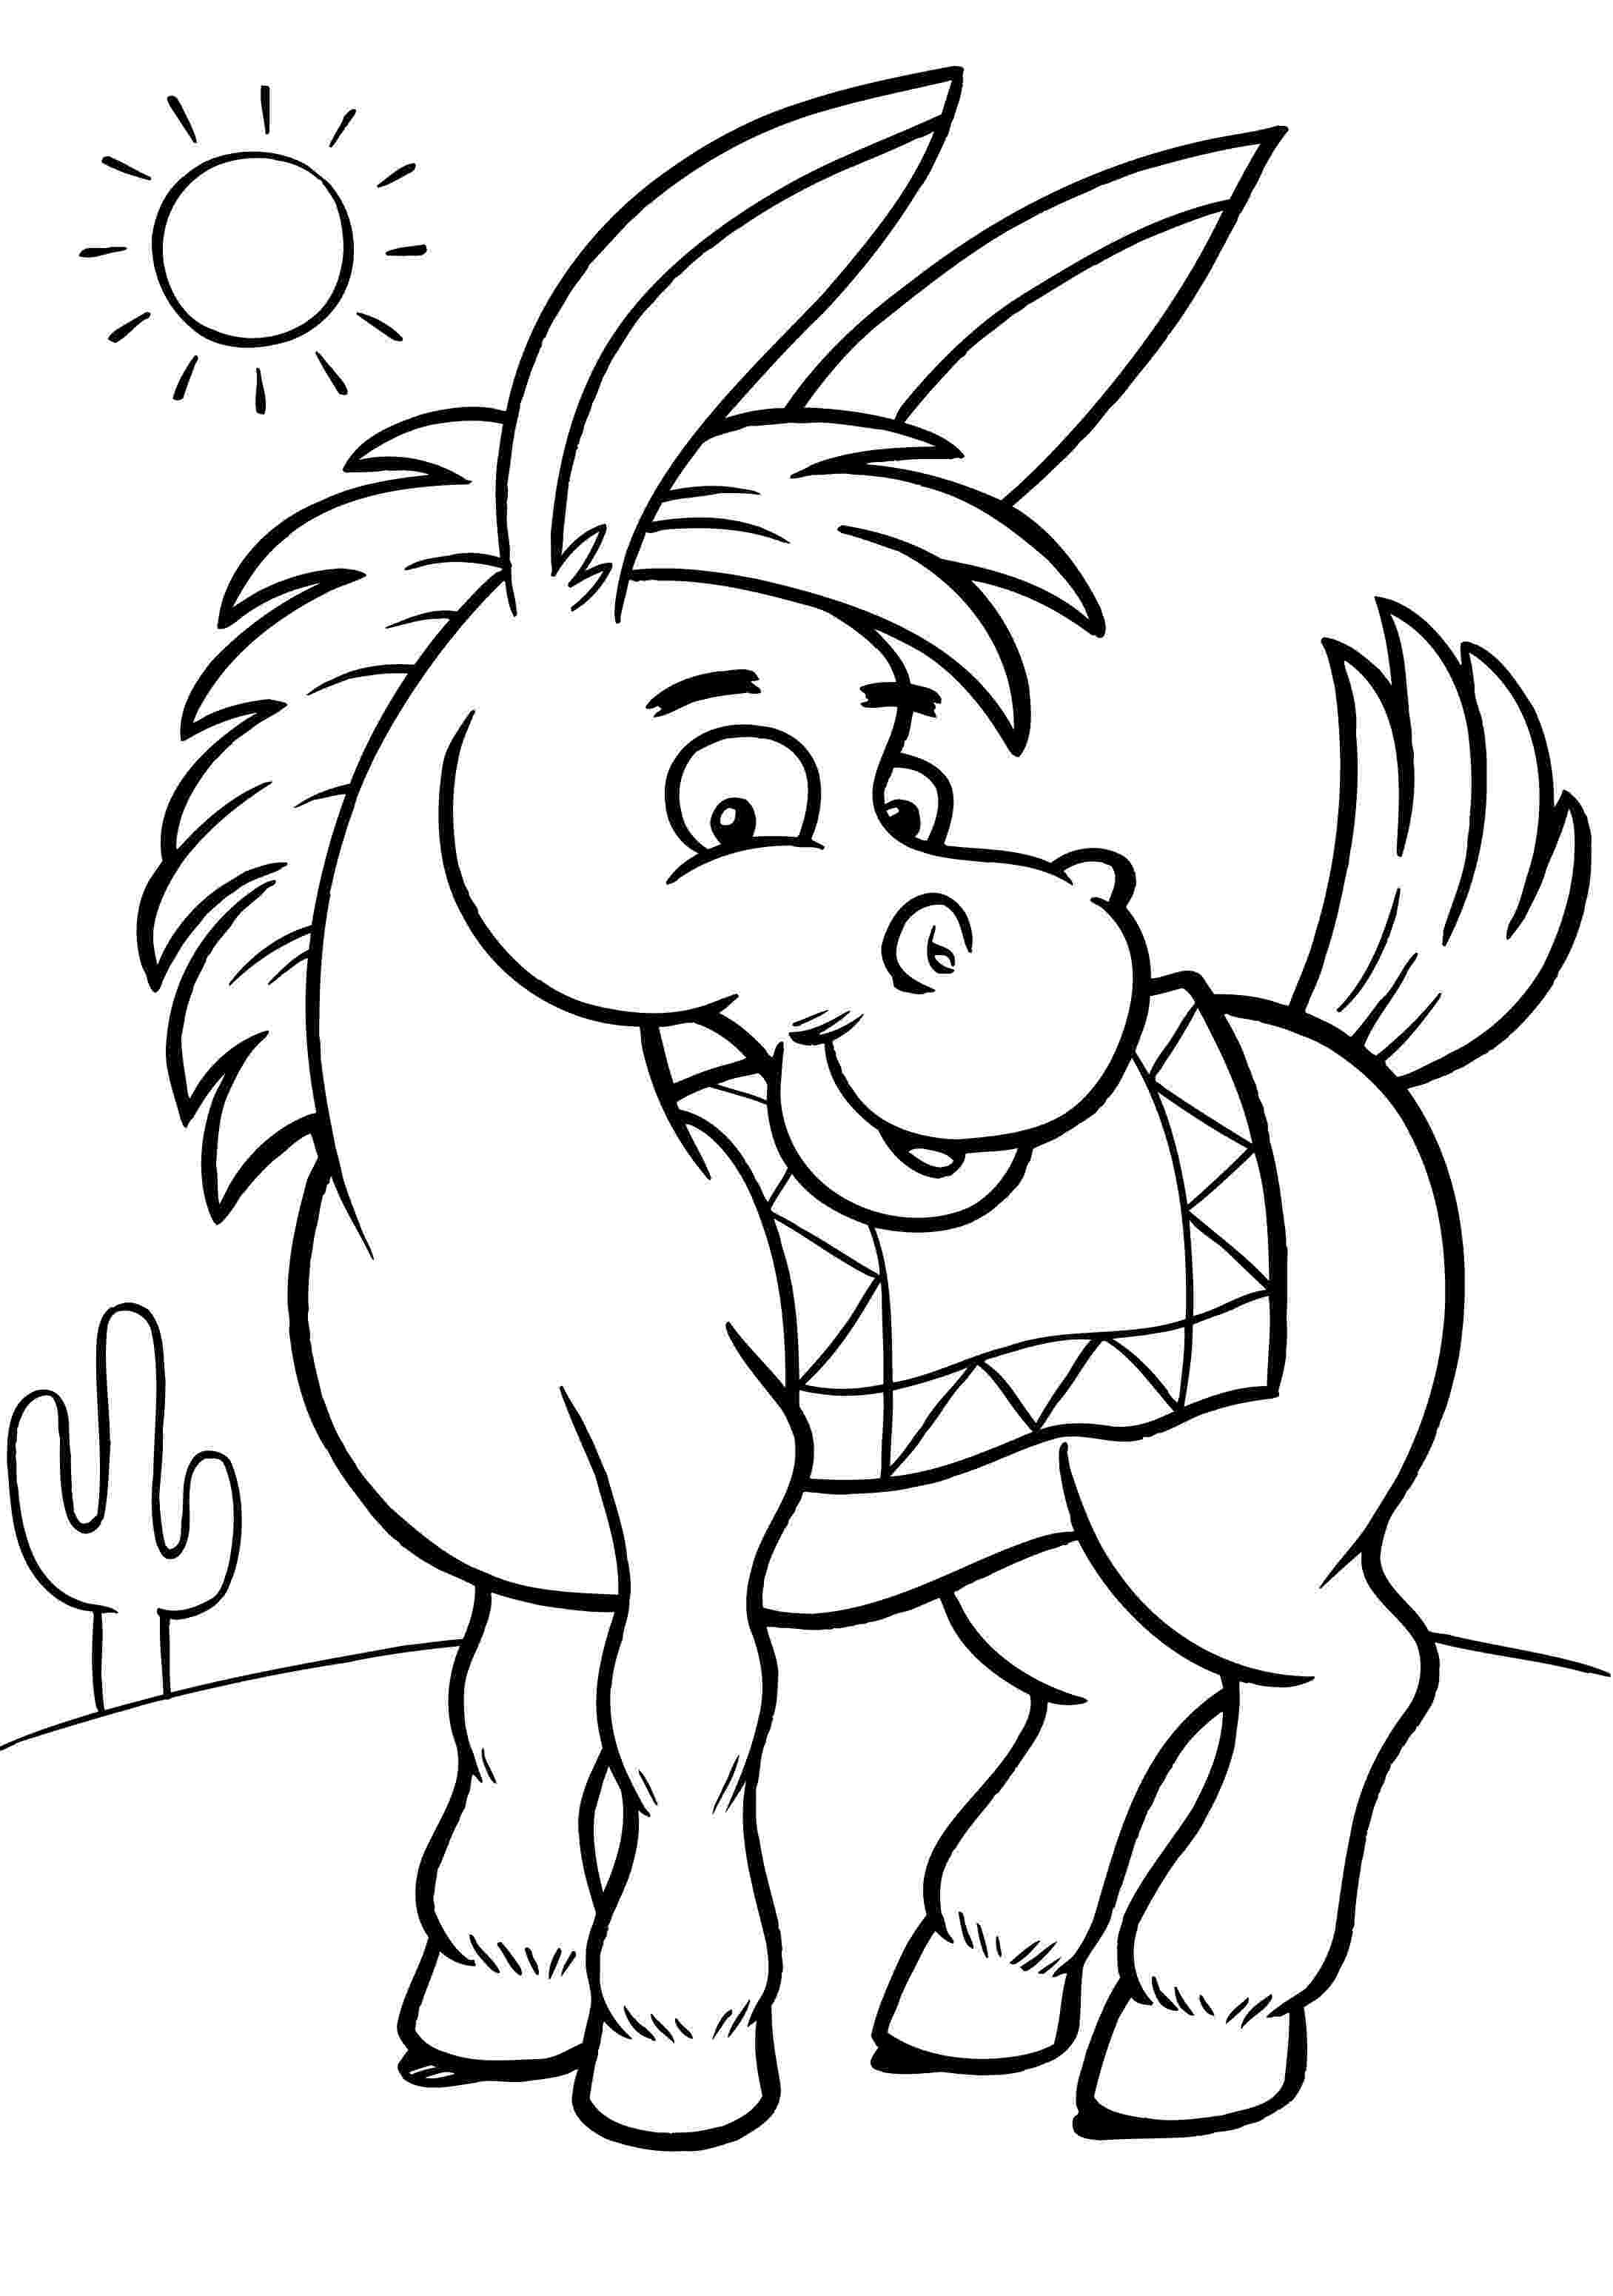 donkey pictures to colour free printable donkey coloring pages for kids colour donkey pictures to